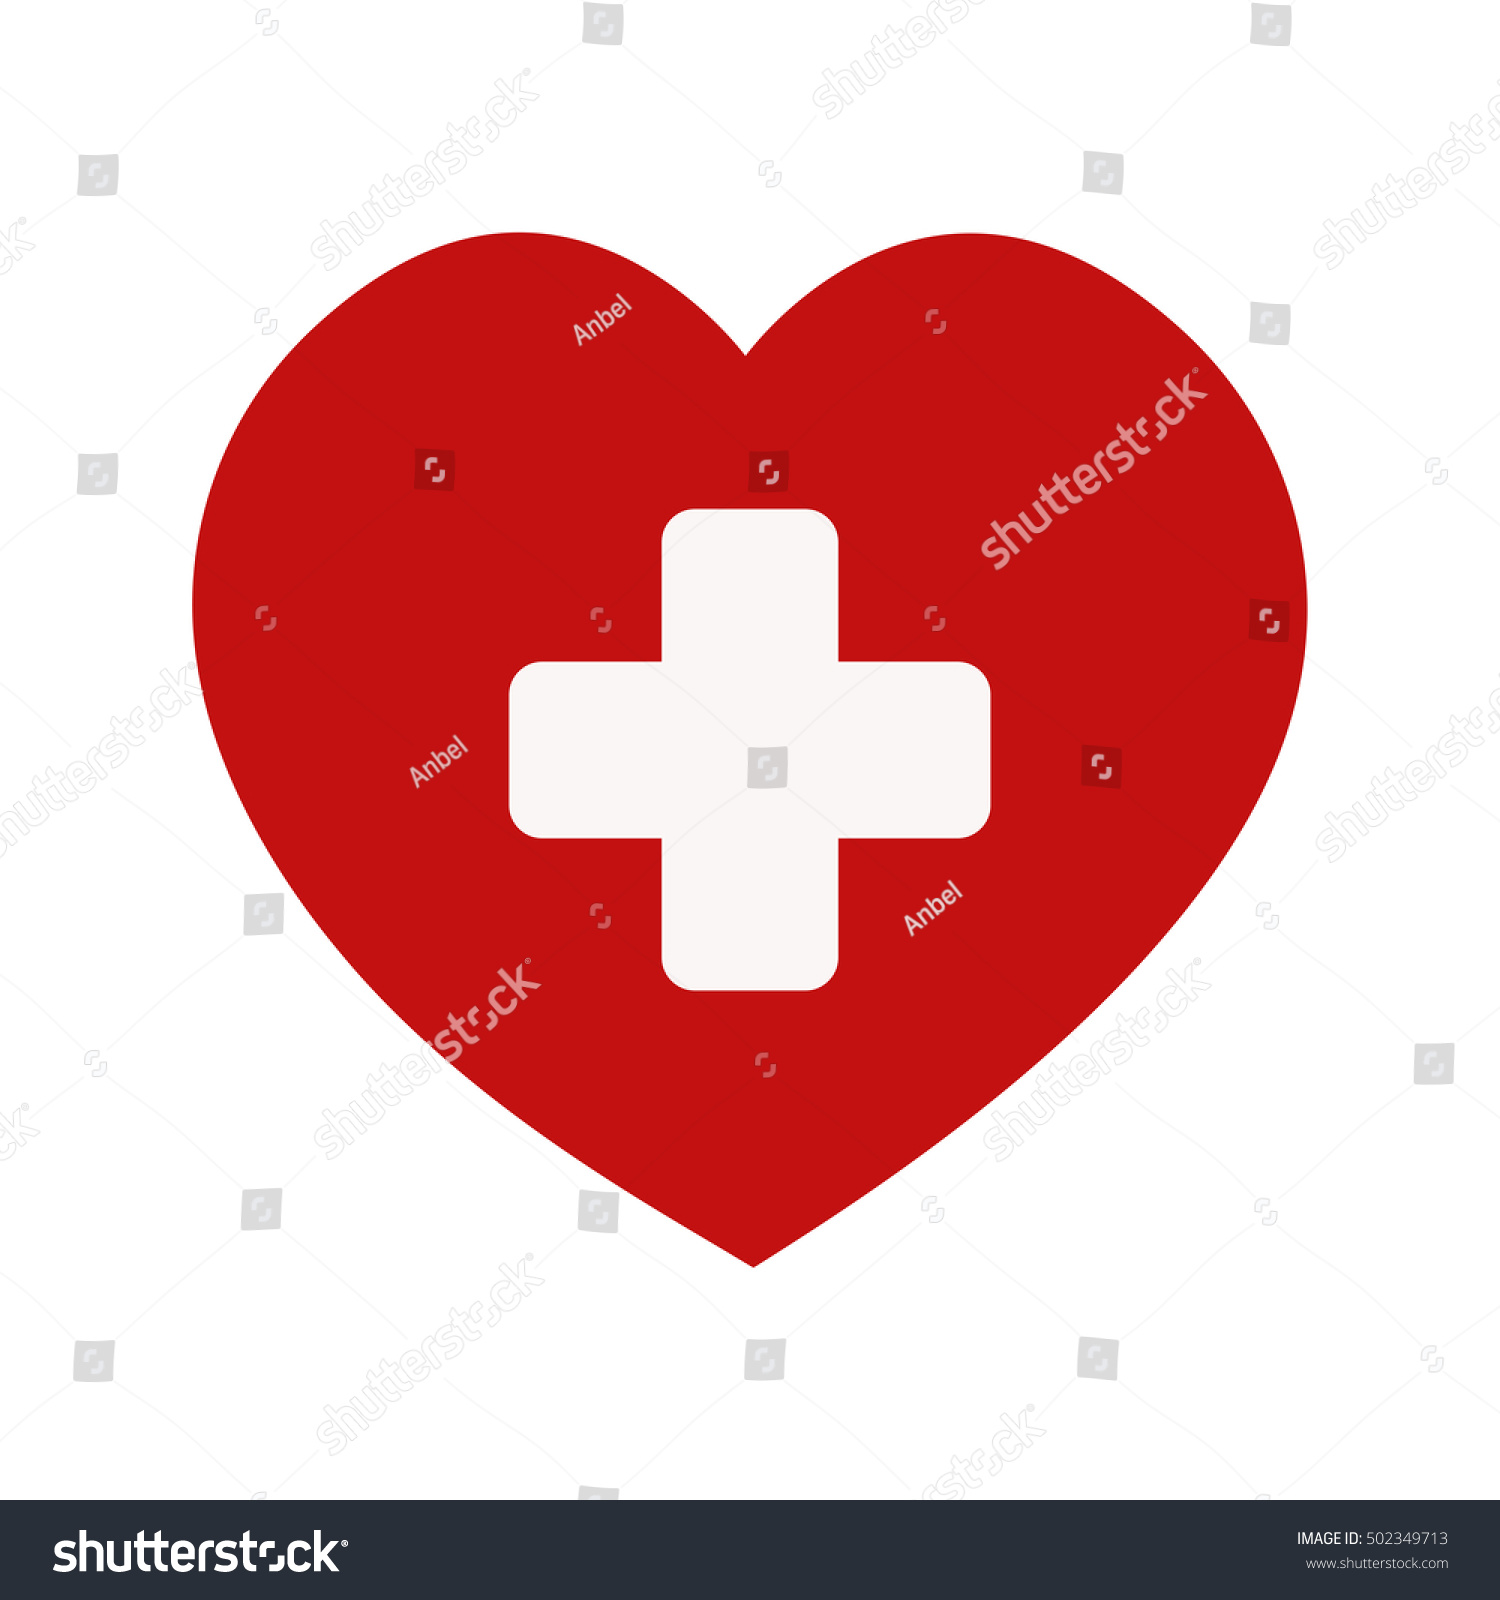 red heart medical cross icon symbol stock illustration